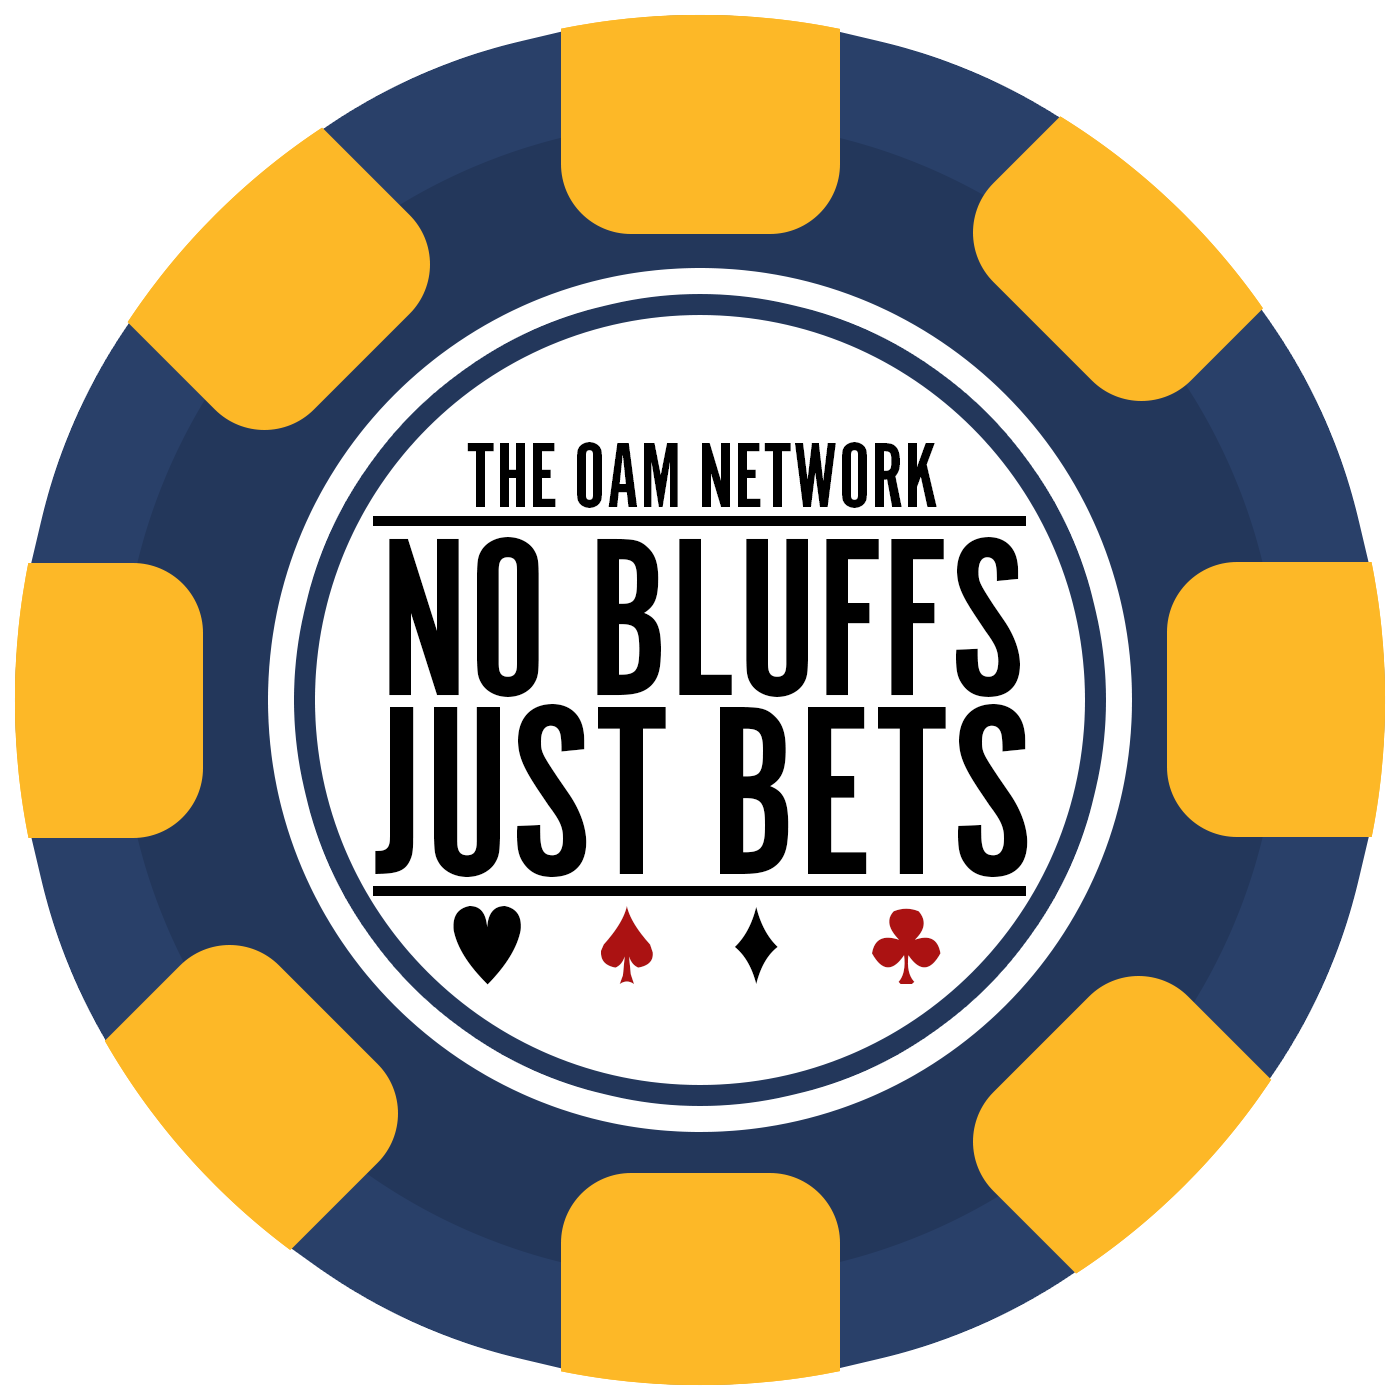 No Bluffs Just Bets The OAM Network